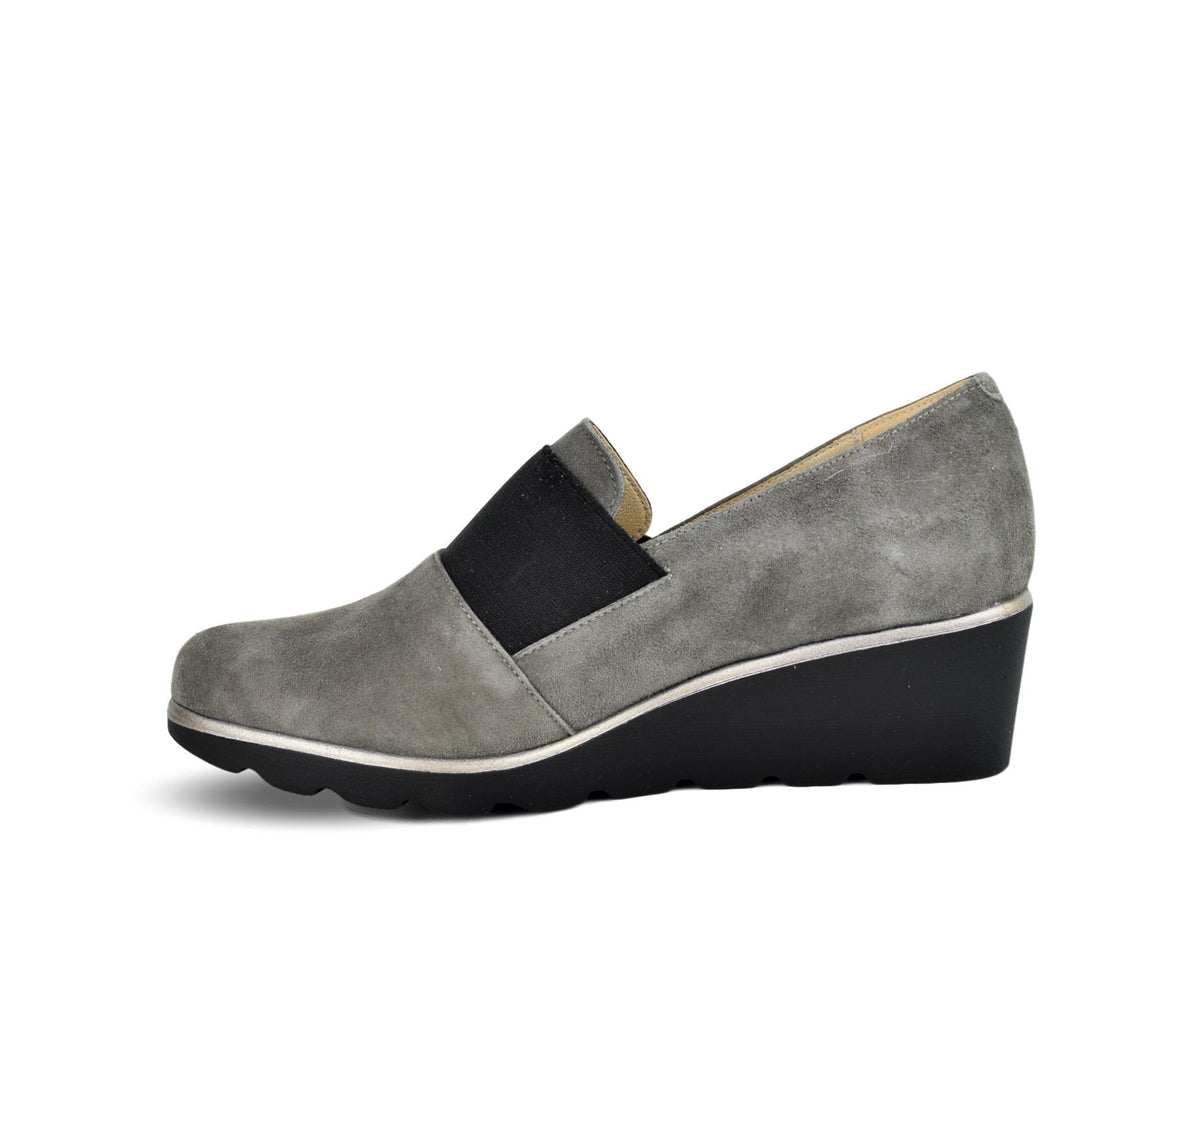 MERCHE - Dchicas Closed Wedge Grey Suede